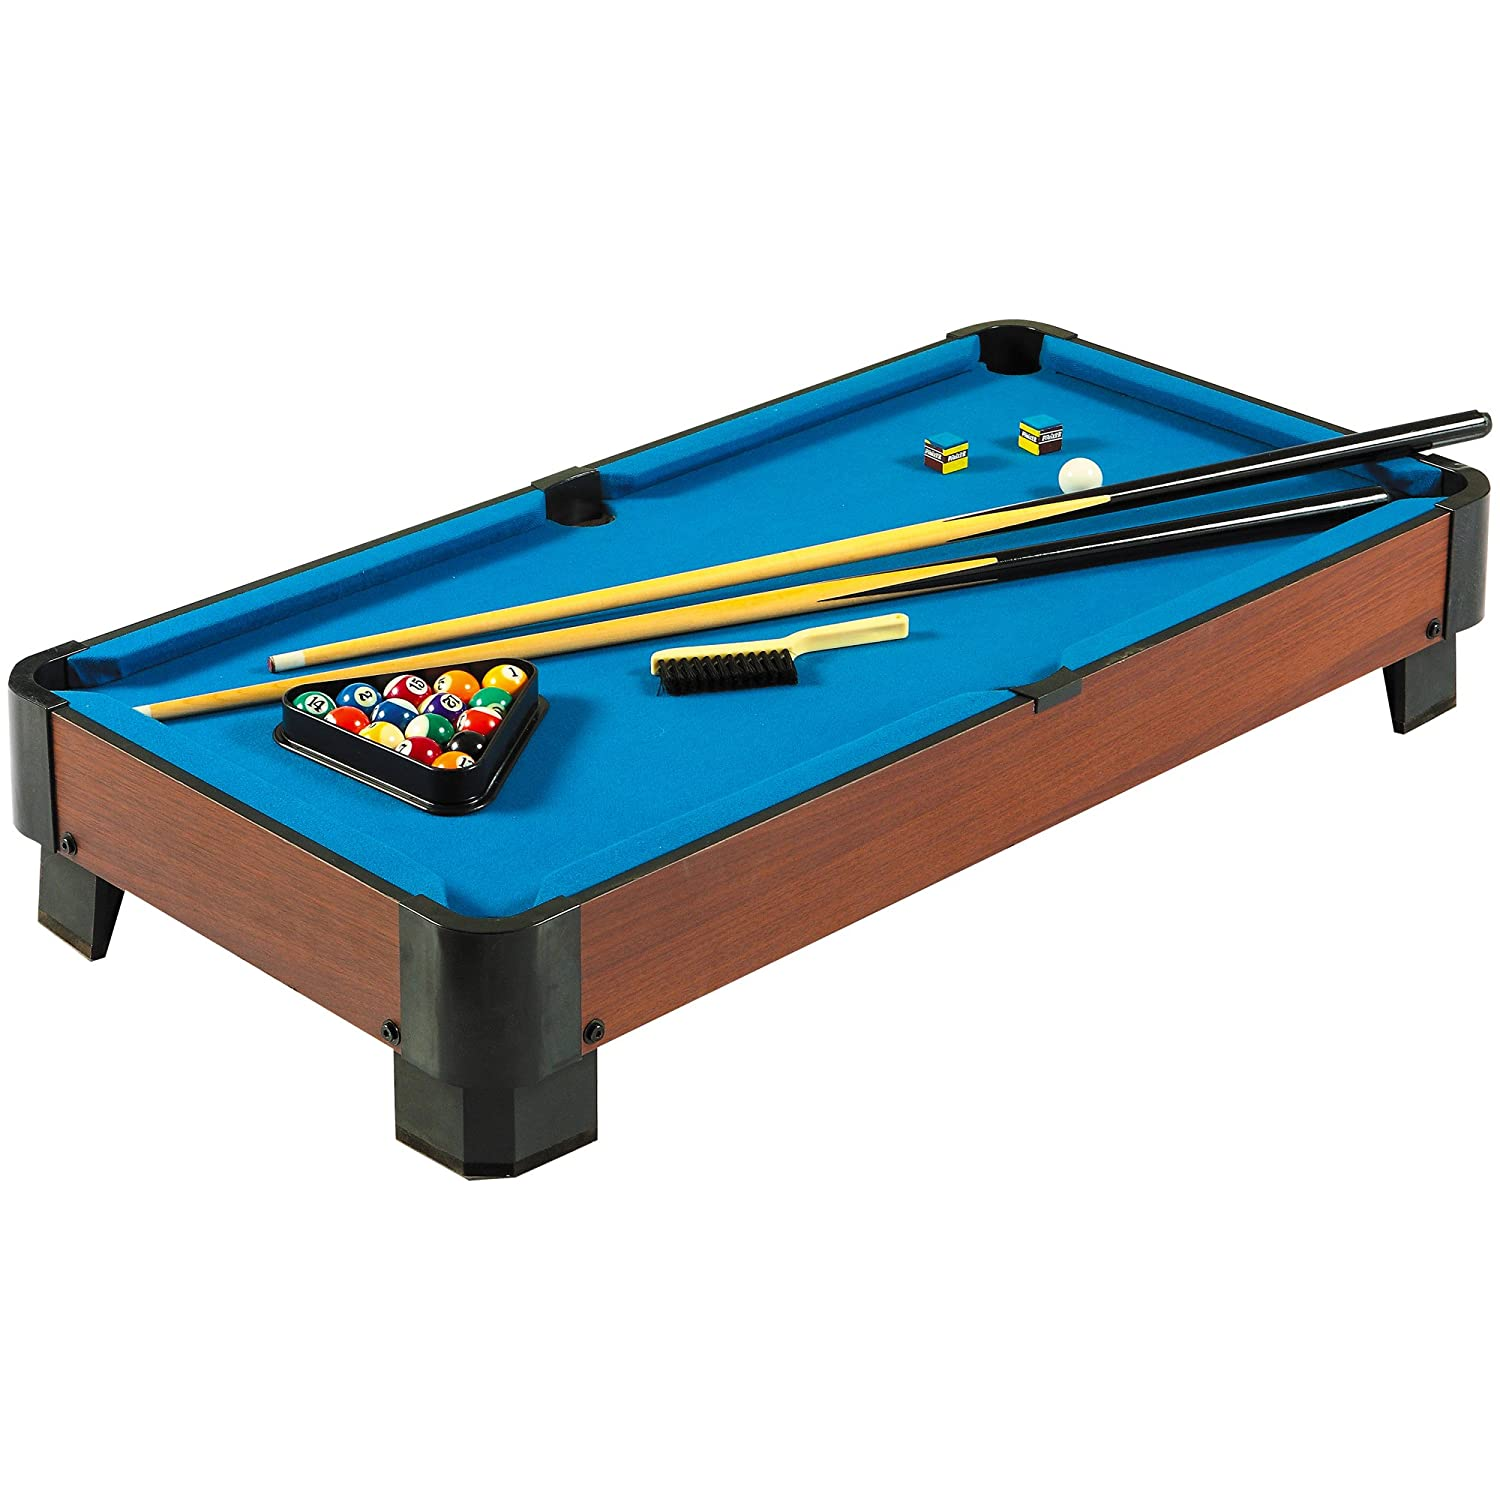 saver billiard dick space table is pool goods noimagefound p mizerak sporting s ft dynasty